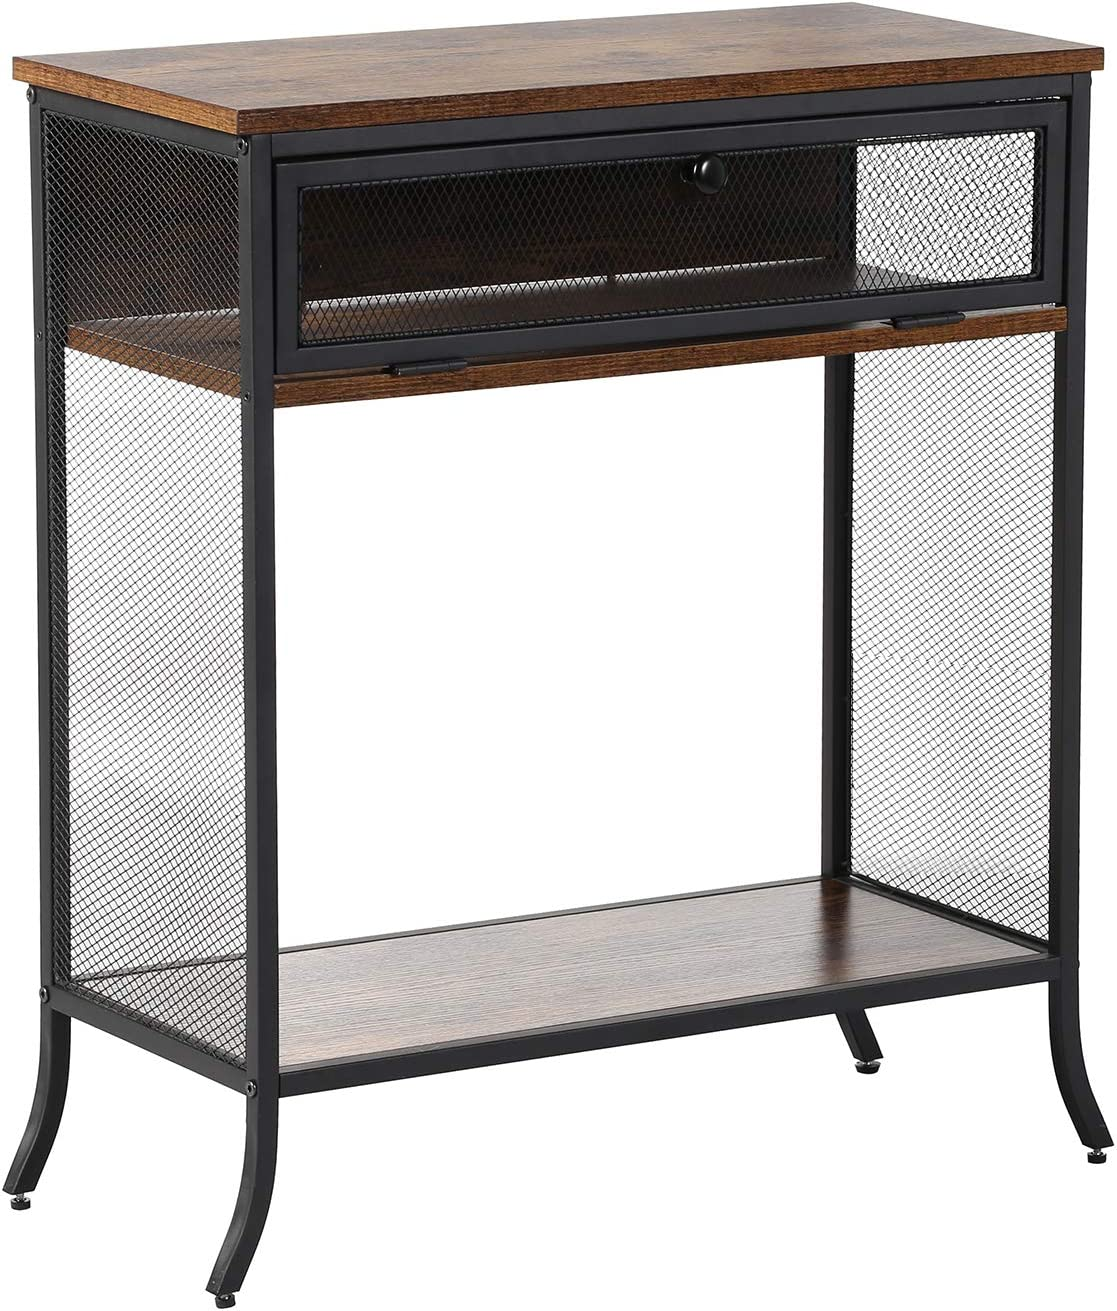 VECELO End Table Nightstand for Bedroom,Retro Brown, 24.7""